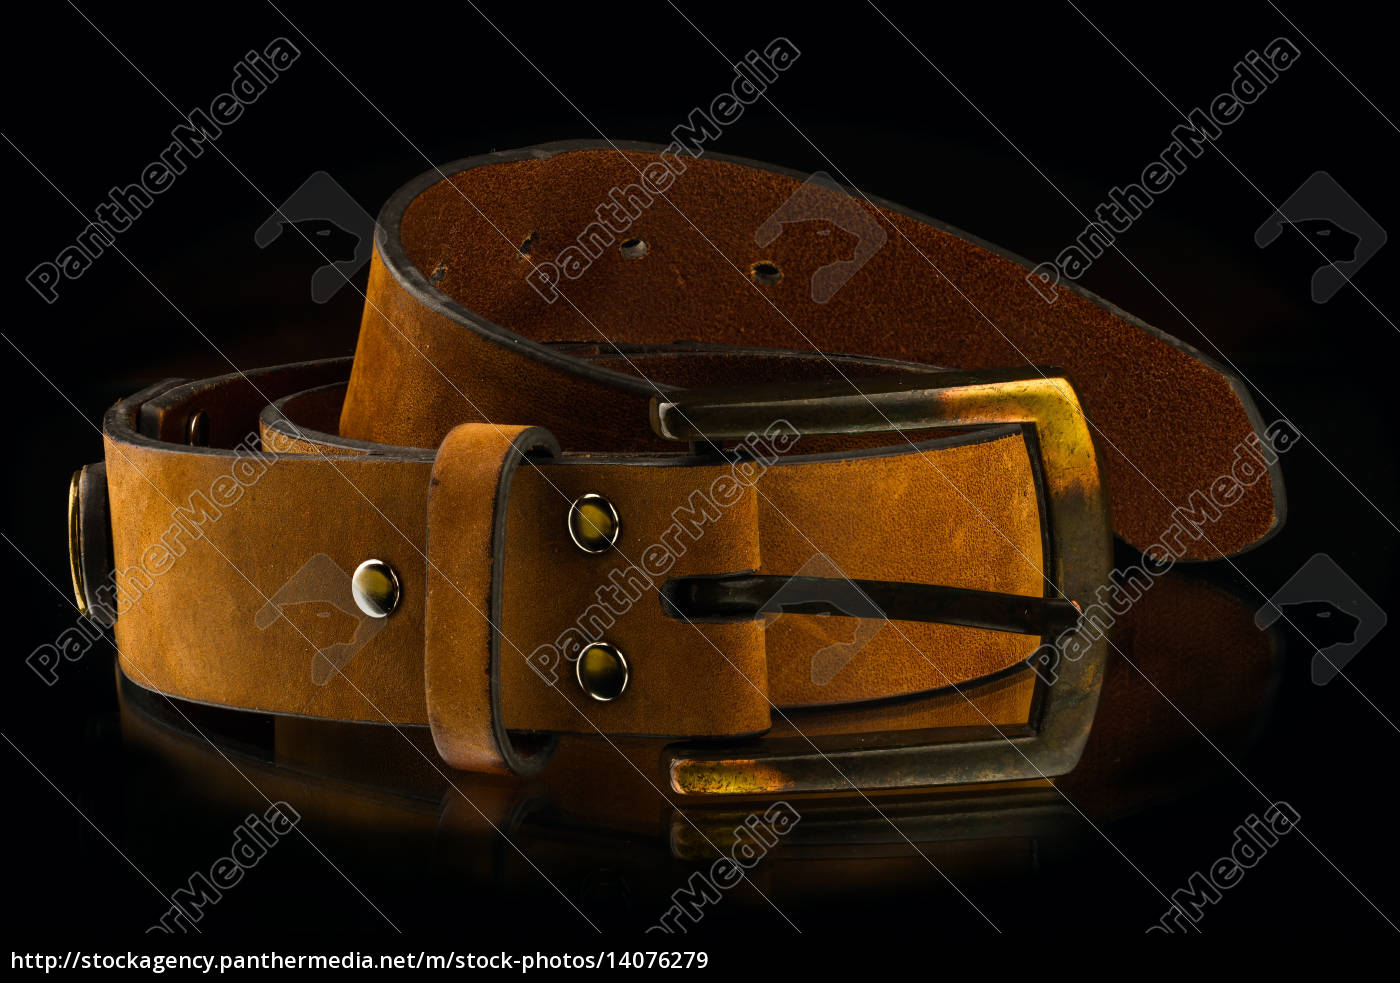 new, stylish, brown, leather, men's, belt - 14076279